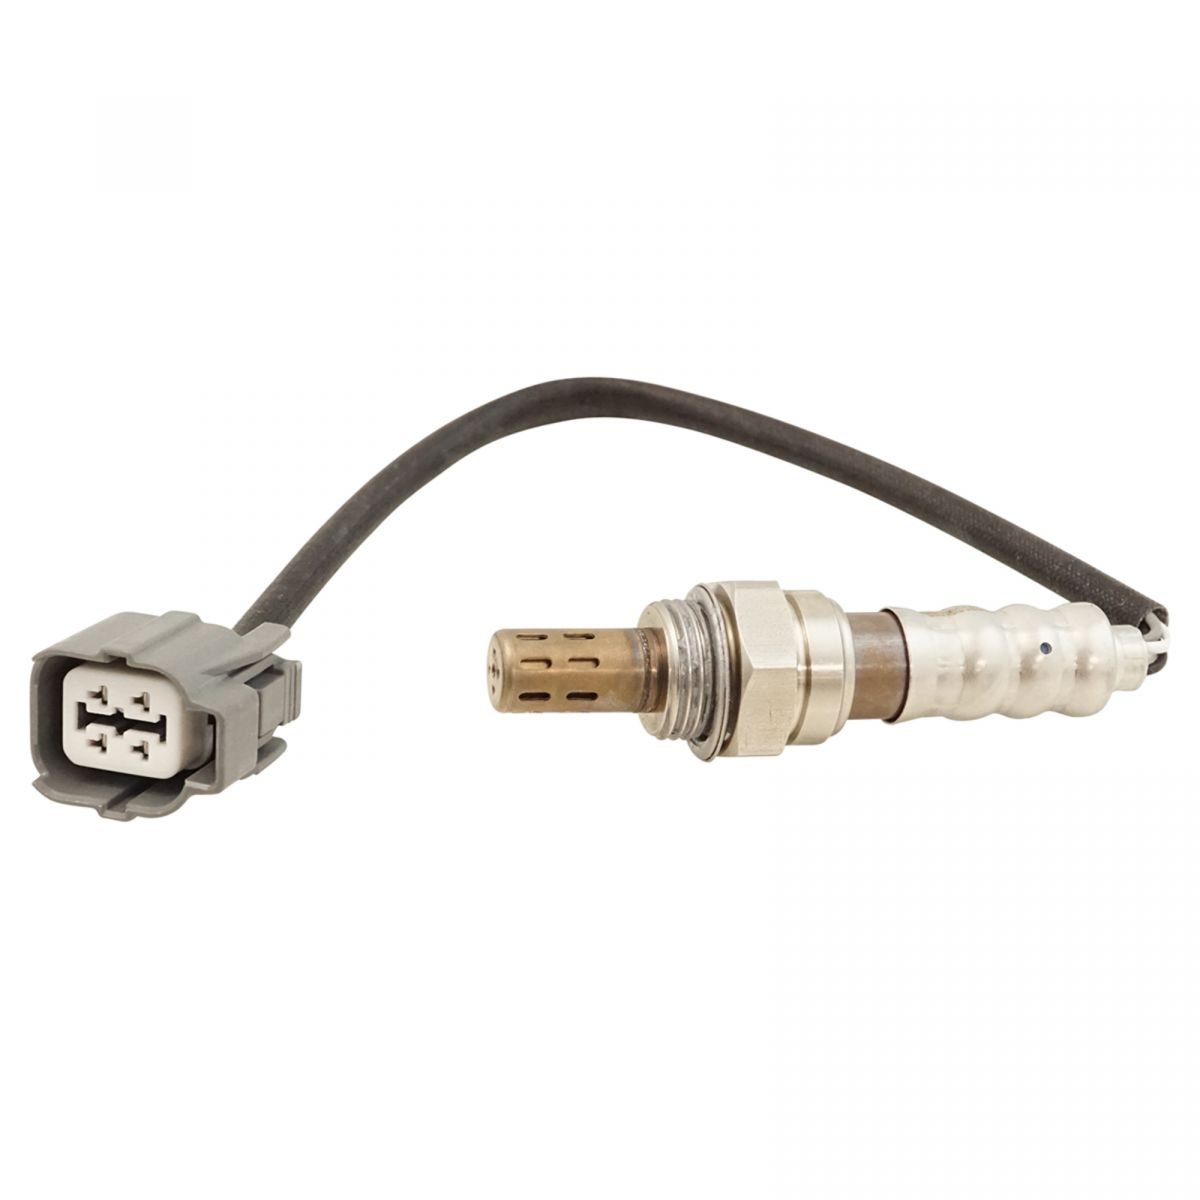 O2 02 Oxygen Sensor for Honda Accord Odyssey Insight ...